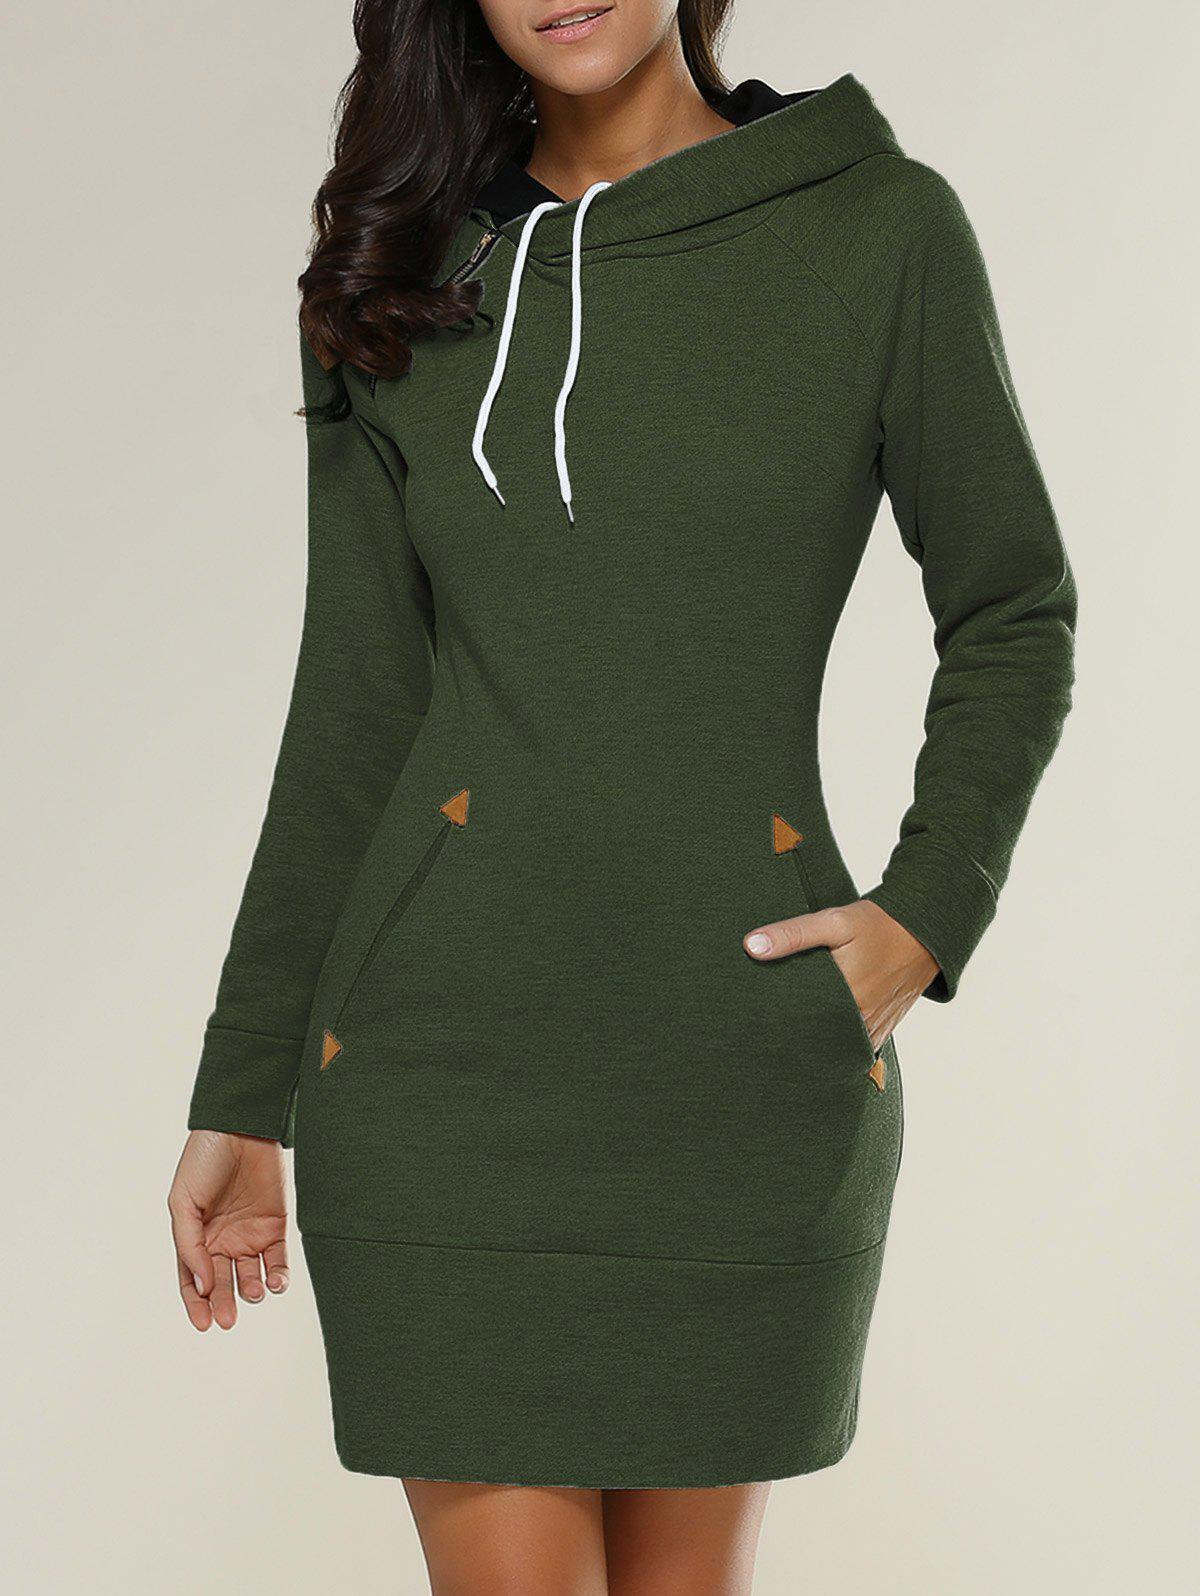 Tight Short Long Sleeve Long Hoodie Mini DressWOMEN<br><br>Size: M; Color: ARMY GREEN; Style: Casual; Material: Polyester; Silhouette: Sheath; Dresses Length: Mini; Neckline: Hooded; Sleeve Length: Long Sleeves; Embellishment: Pockets; Pattern Type: Solid; With Belt: No; Season: Fall,Spring; Weight: 0.612kg; Package Contents: 1 x Hoodie Dress;